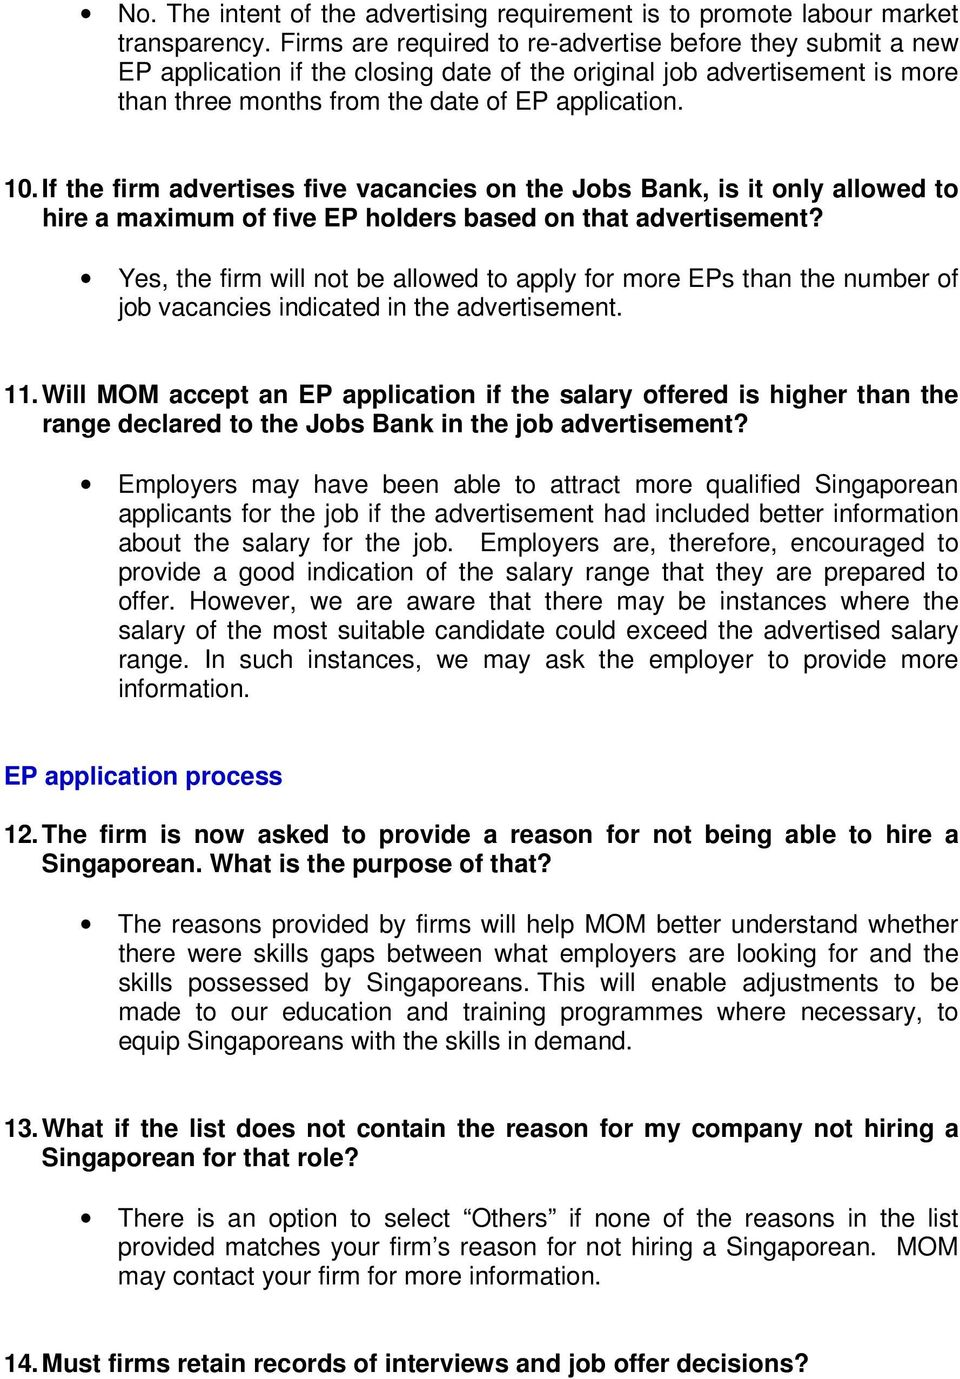 If the firm advertises five vacancies on the Jobs Bank, is it only allowed to hire a maximum of five EP holders based on that advertisement?